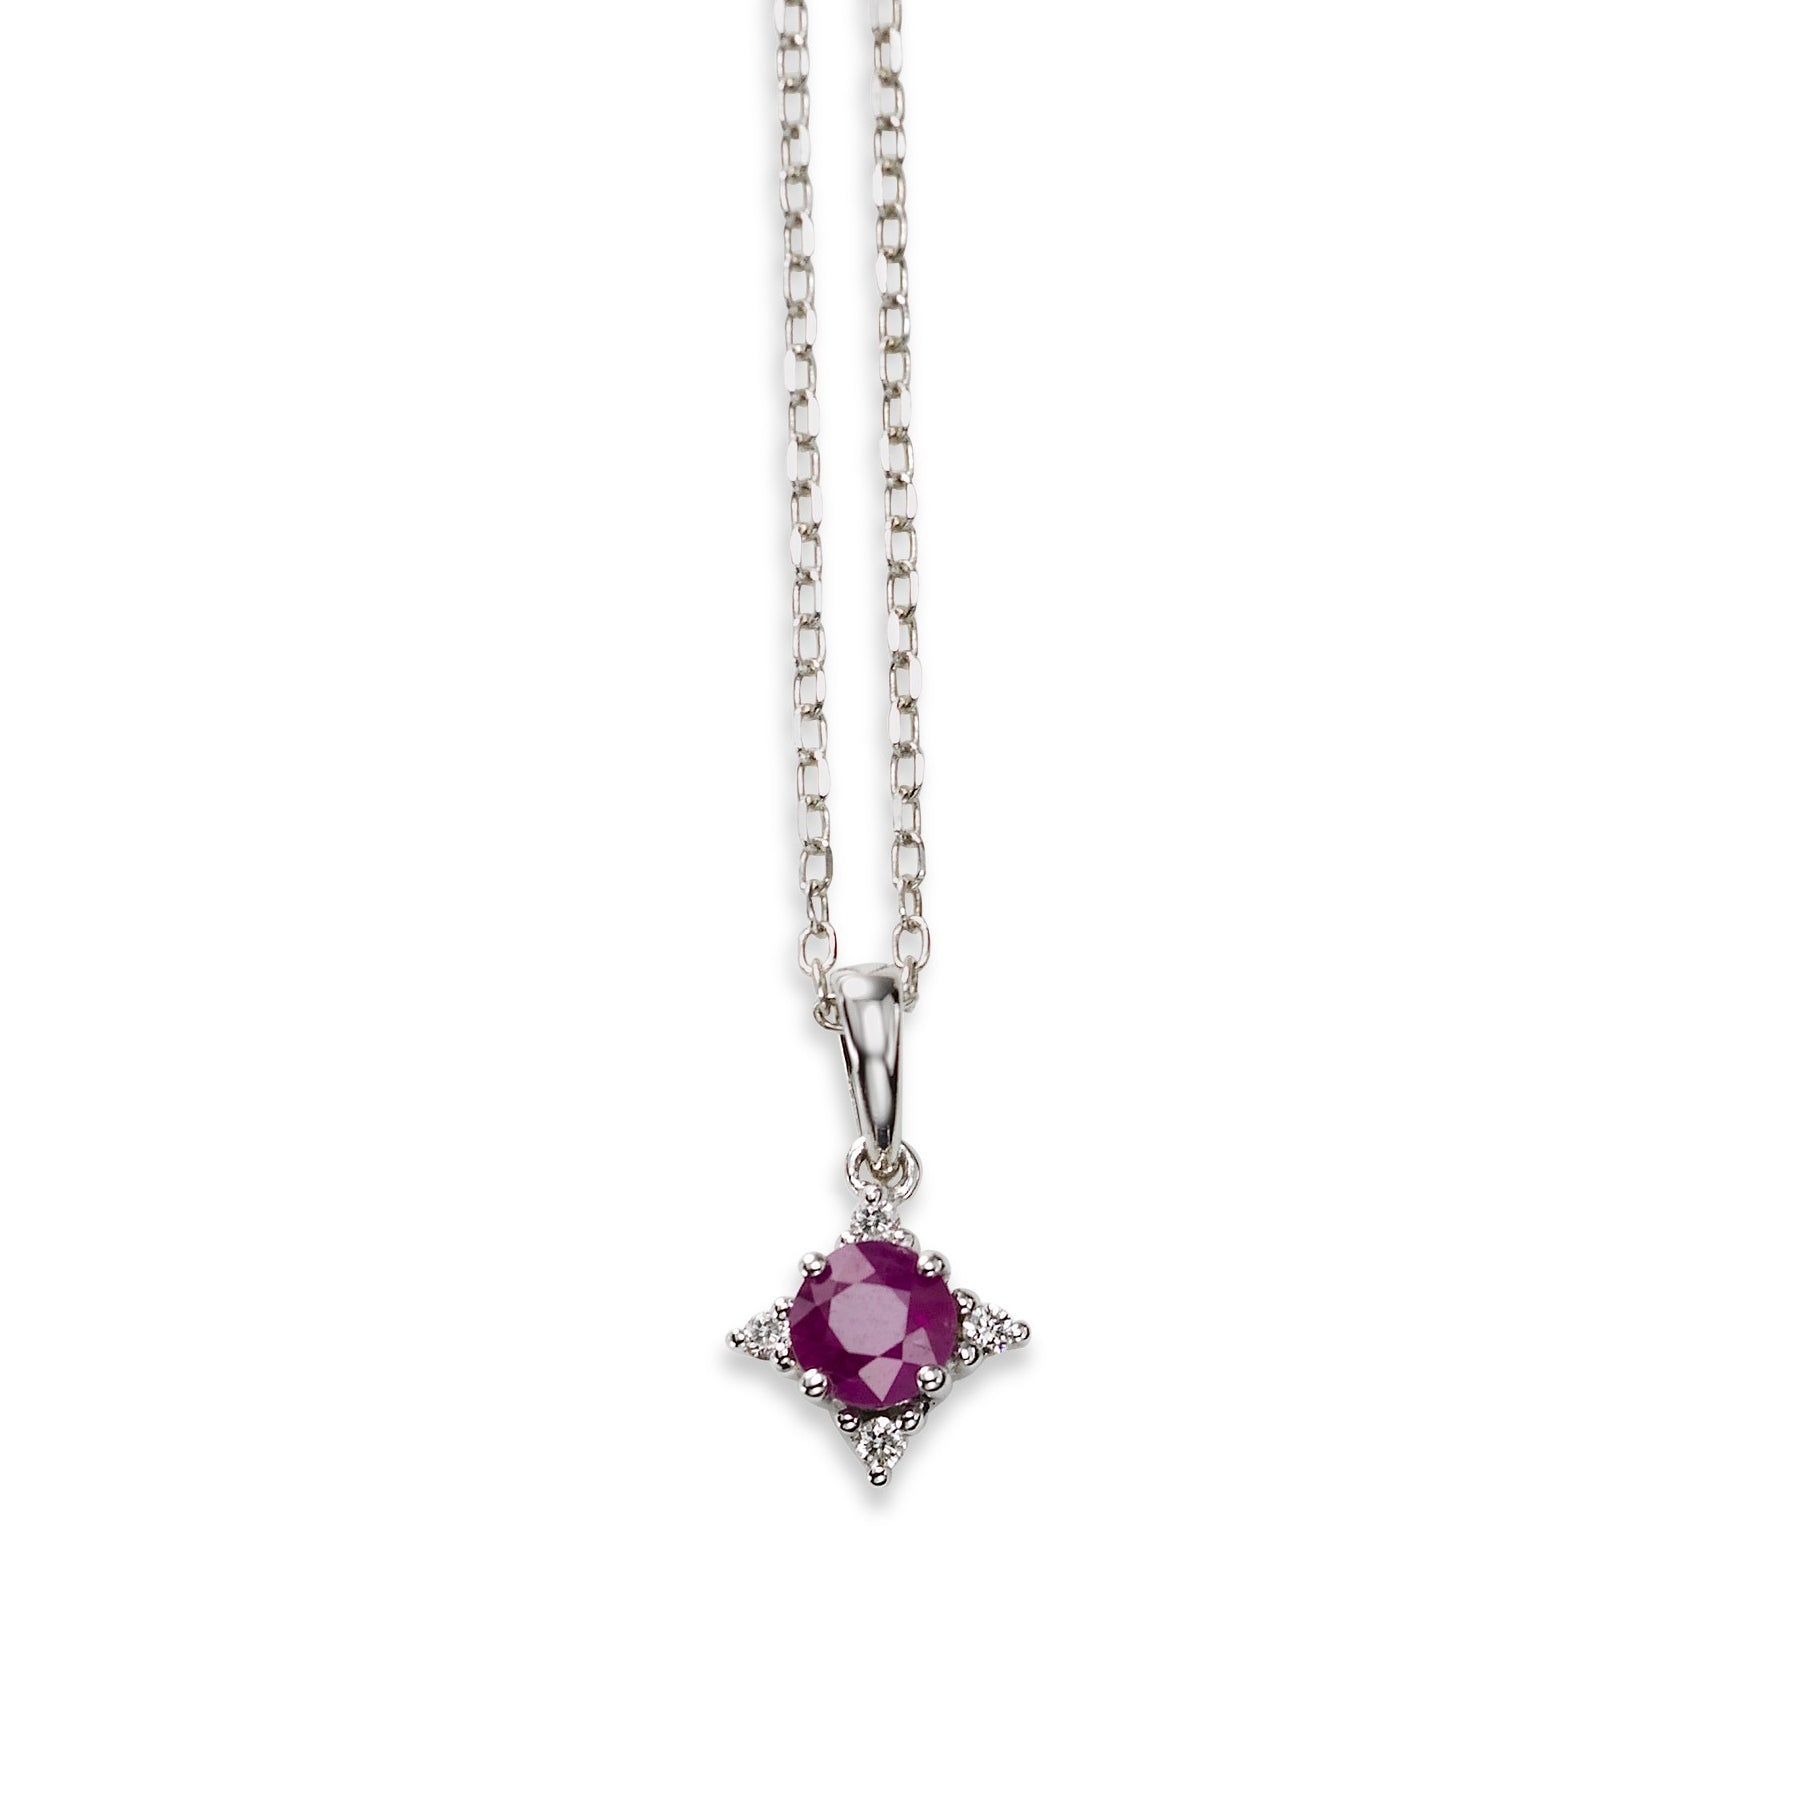 Small Ruby Pendant with Diamond Accent, 14K White Gold